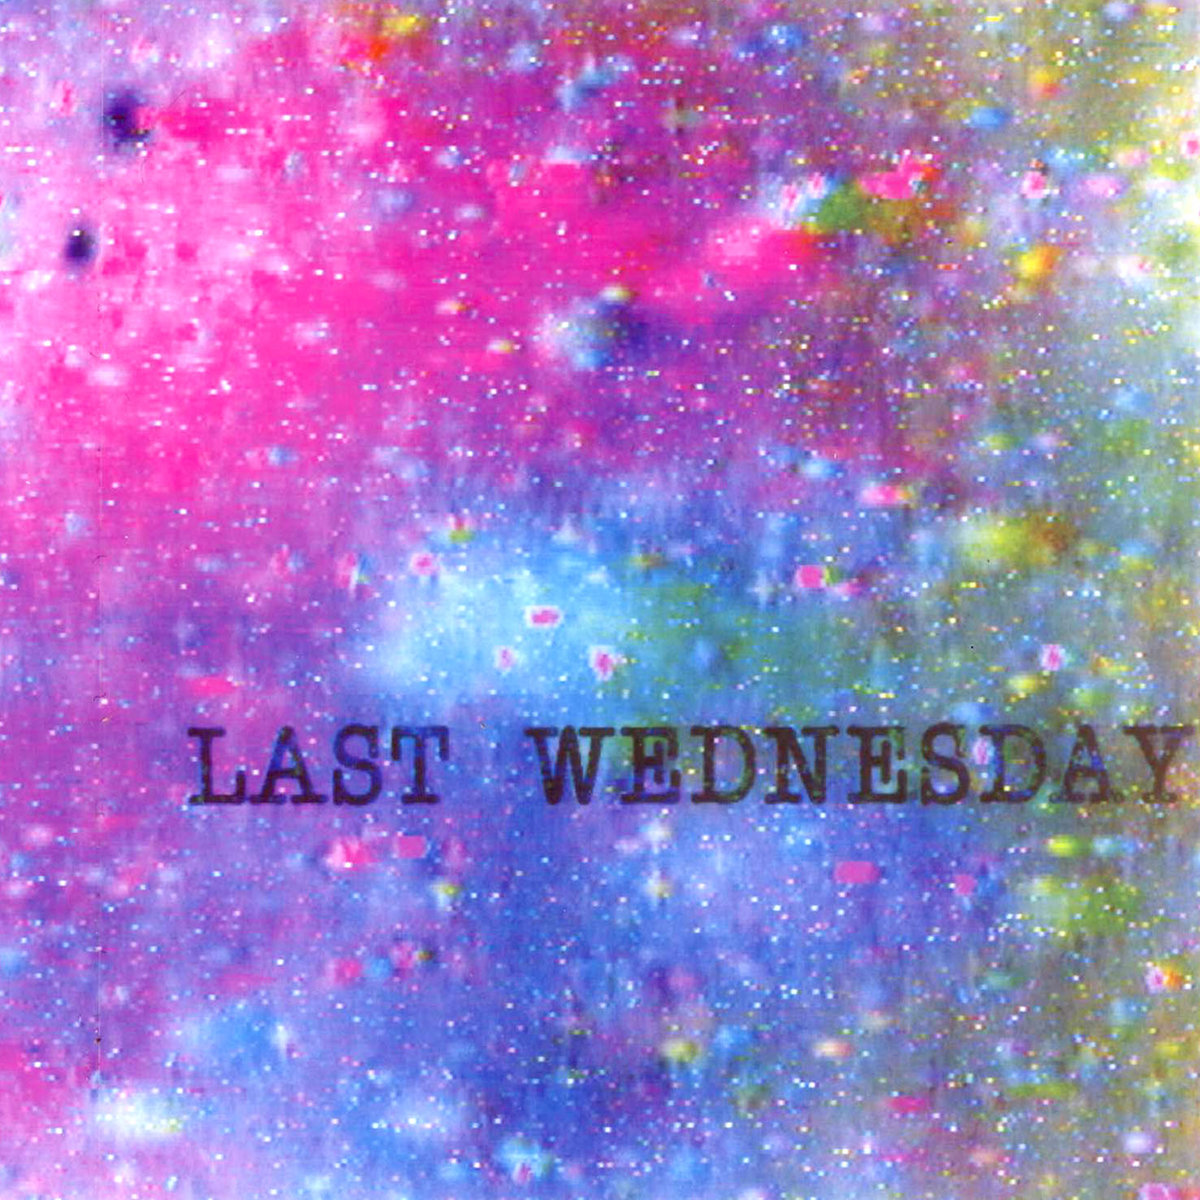 das: last wednesday